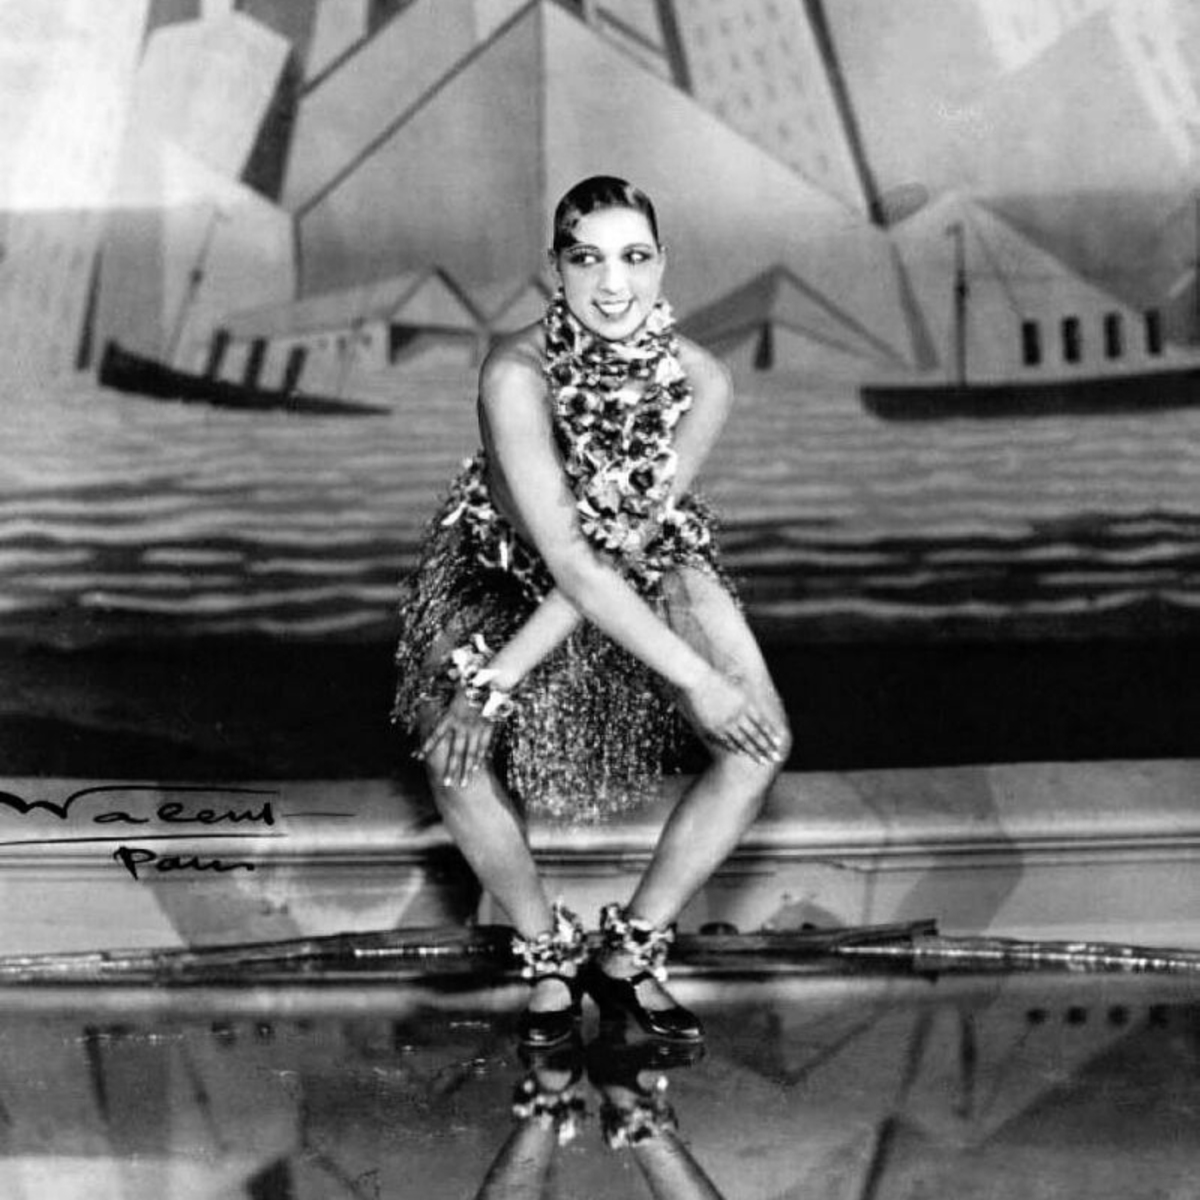 Your guest are going to want to dance like Josephine Baker in their best flapper attire, so be sure to provide plenty of on-theme music and a dance floor.